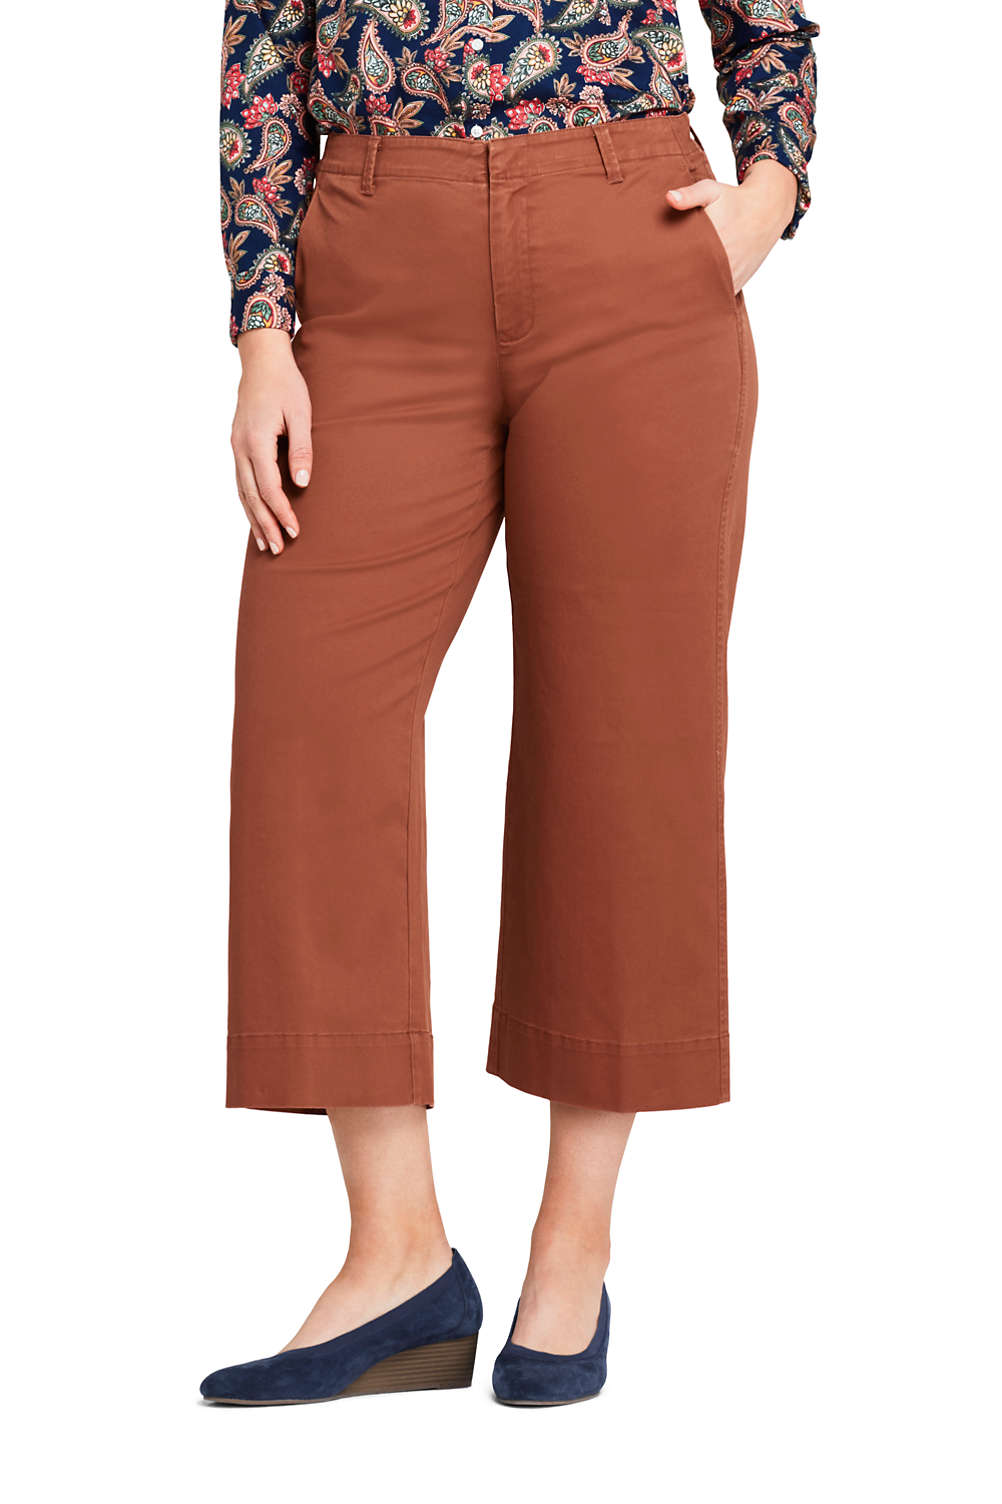 ad16b63ba9fe Women s Plus Size Mid Rise Chino Wide Leg Crop Pants from Lands  End